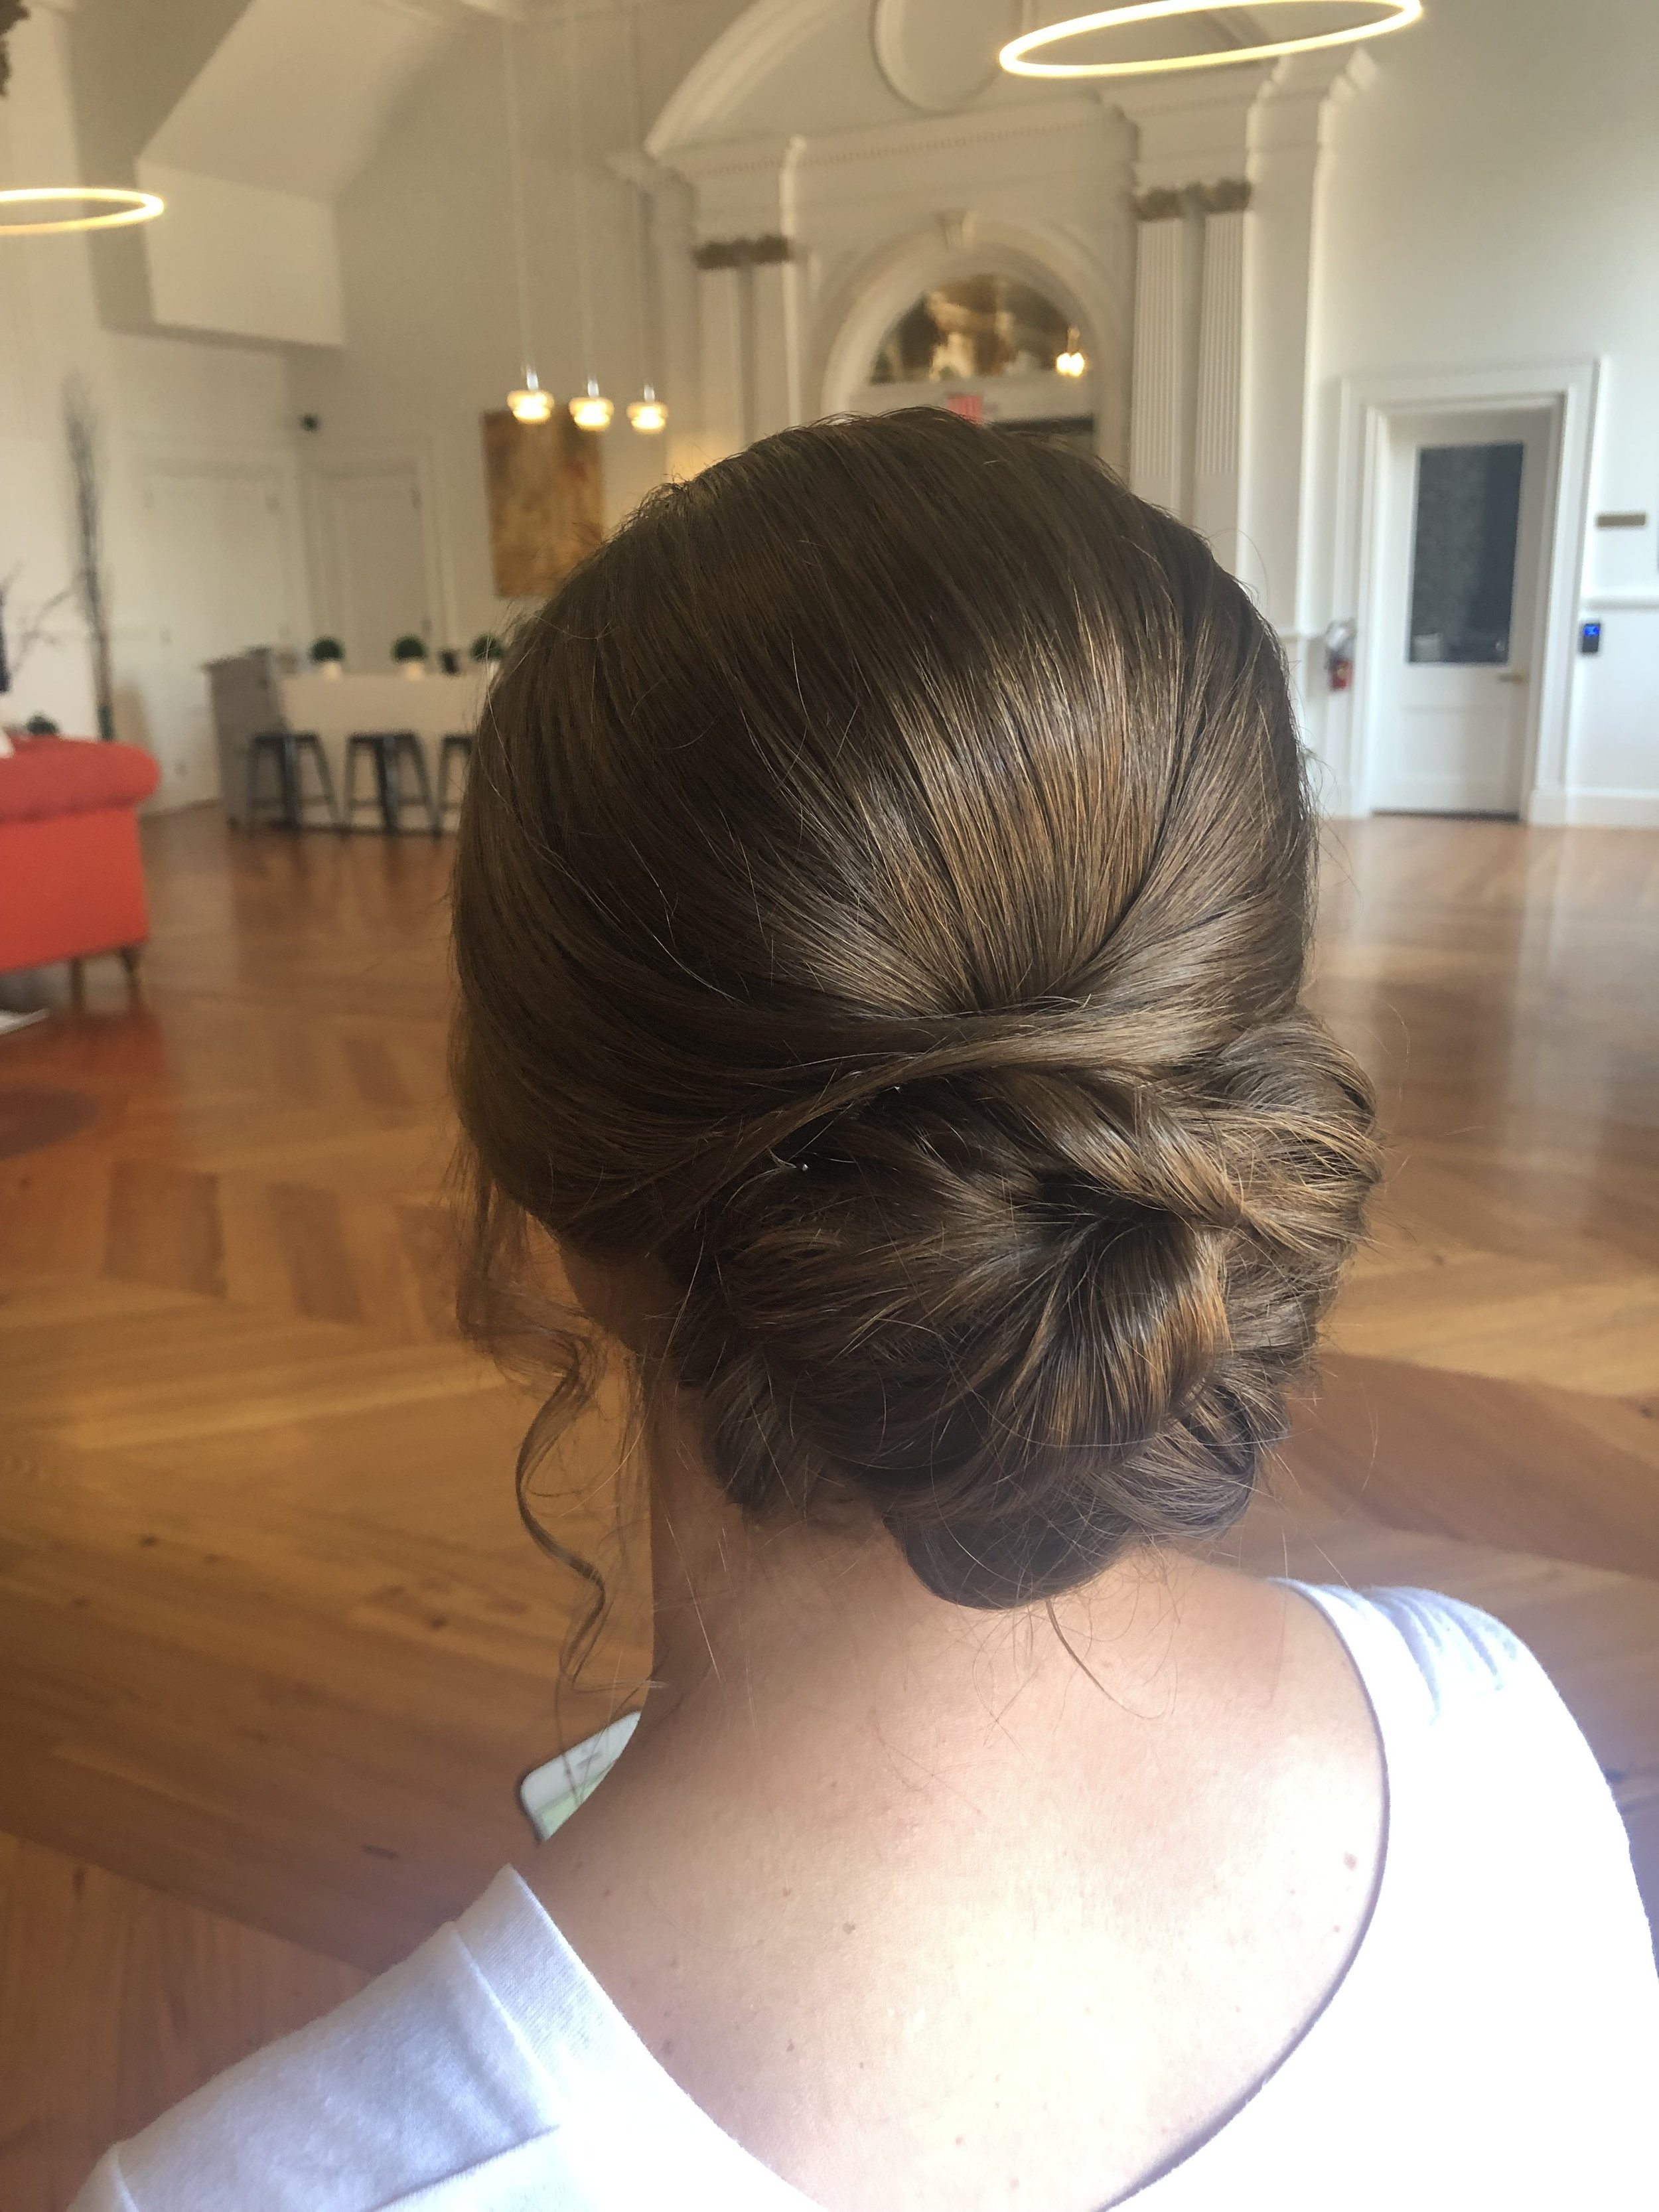 Updo work for Something You Onsite Beauty